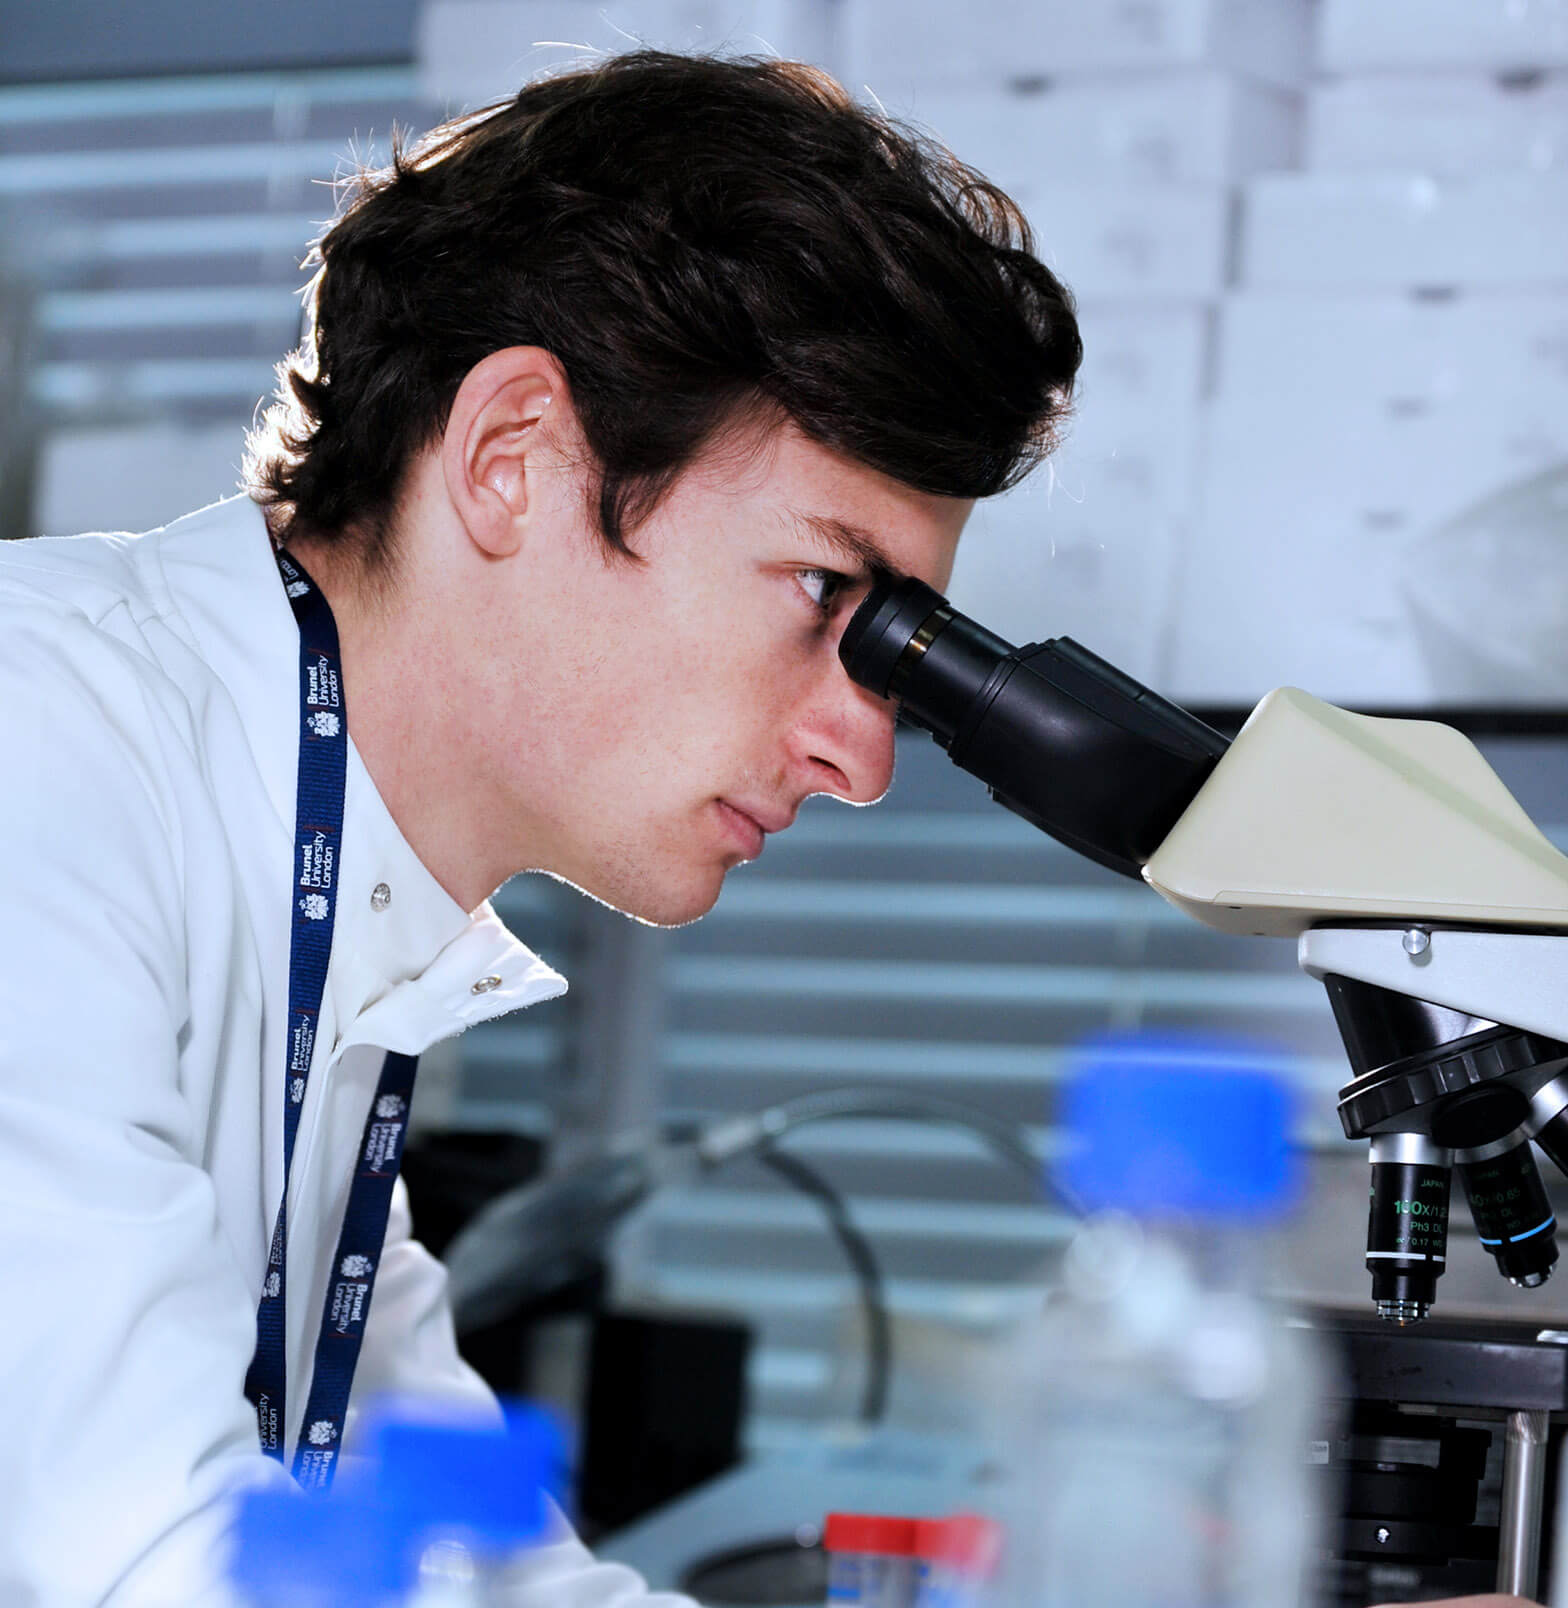 Male student looking through microscope in a bioscience lab